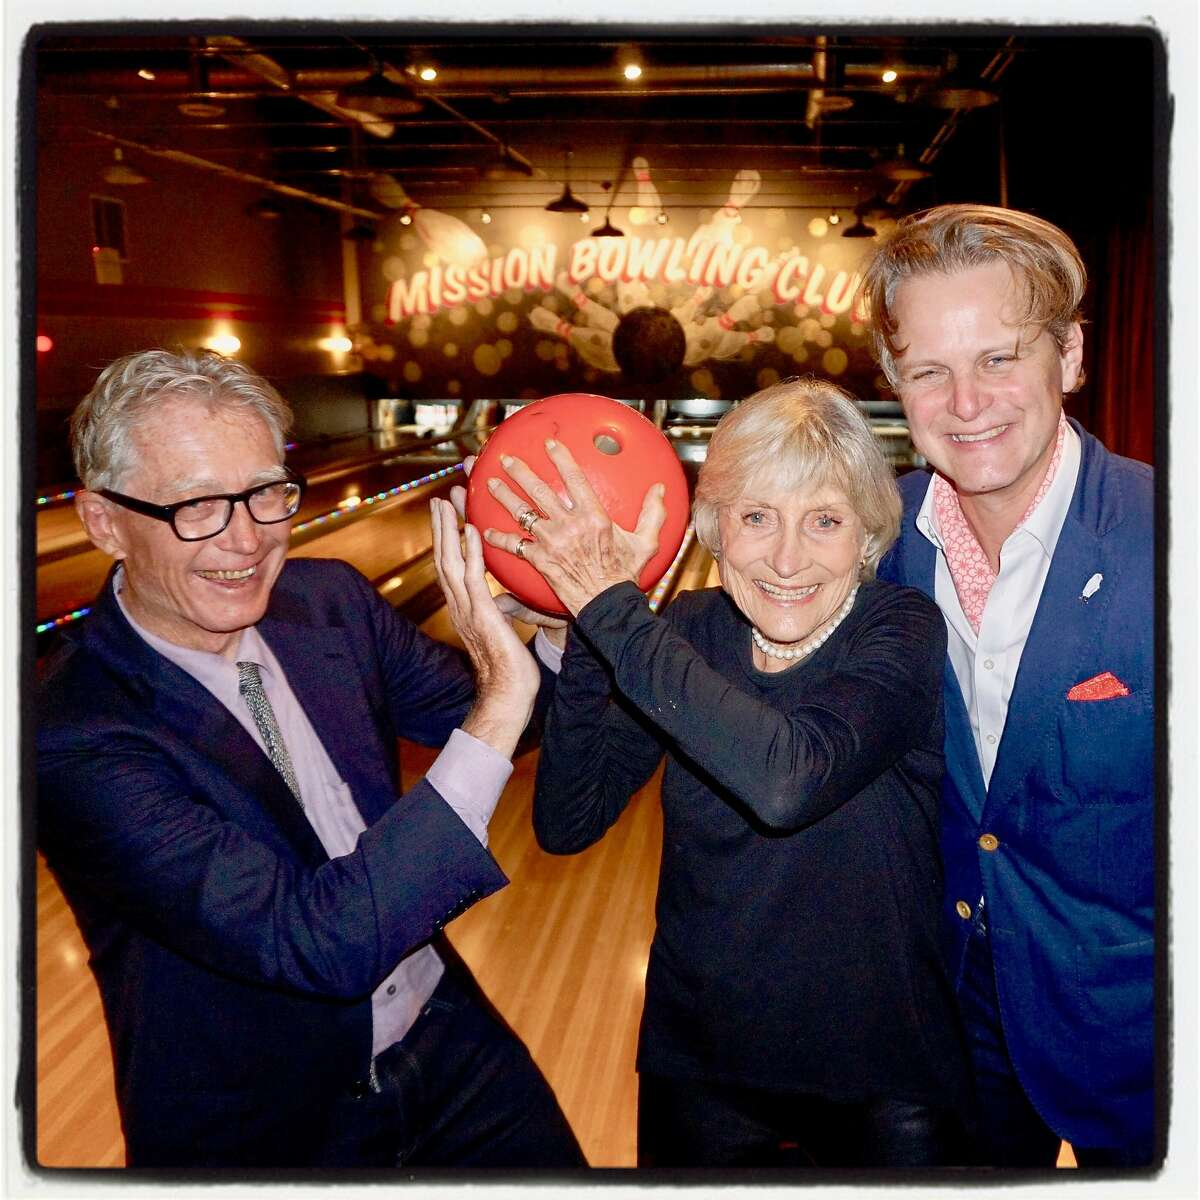 Film director Christopher Upham (left) with Roxie Theater foundation trustees Diana Fuller and Owsley Brown at Mission Bowling. March 8, 2017.